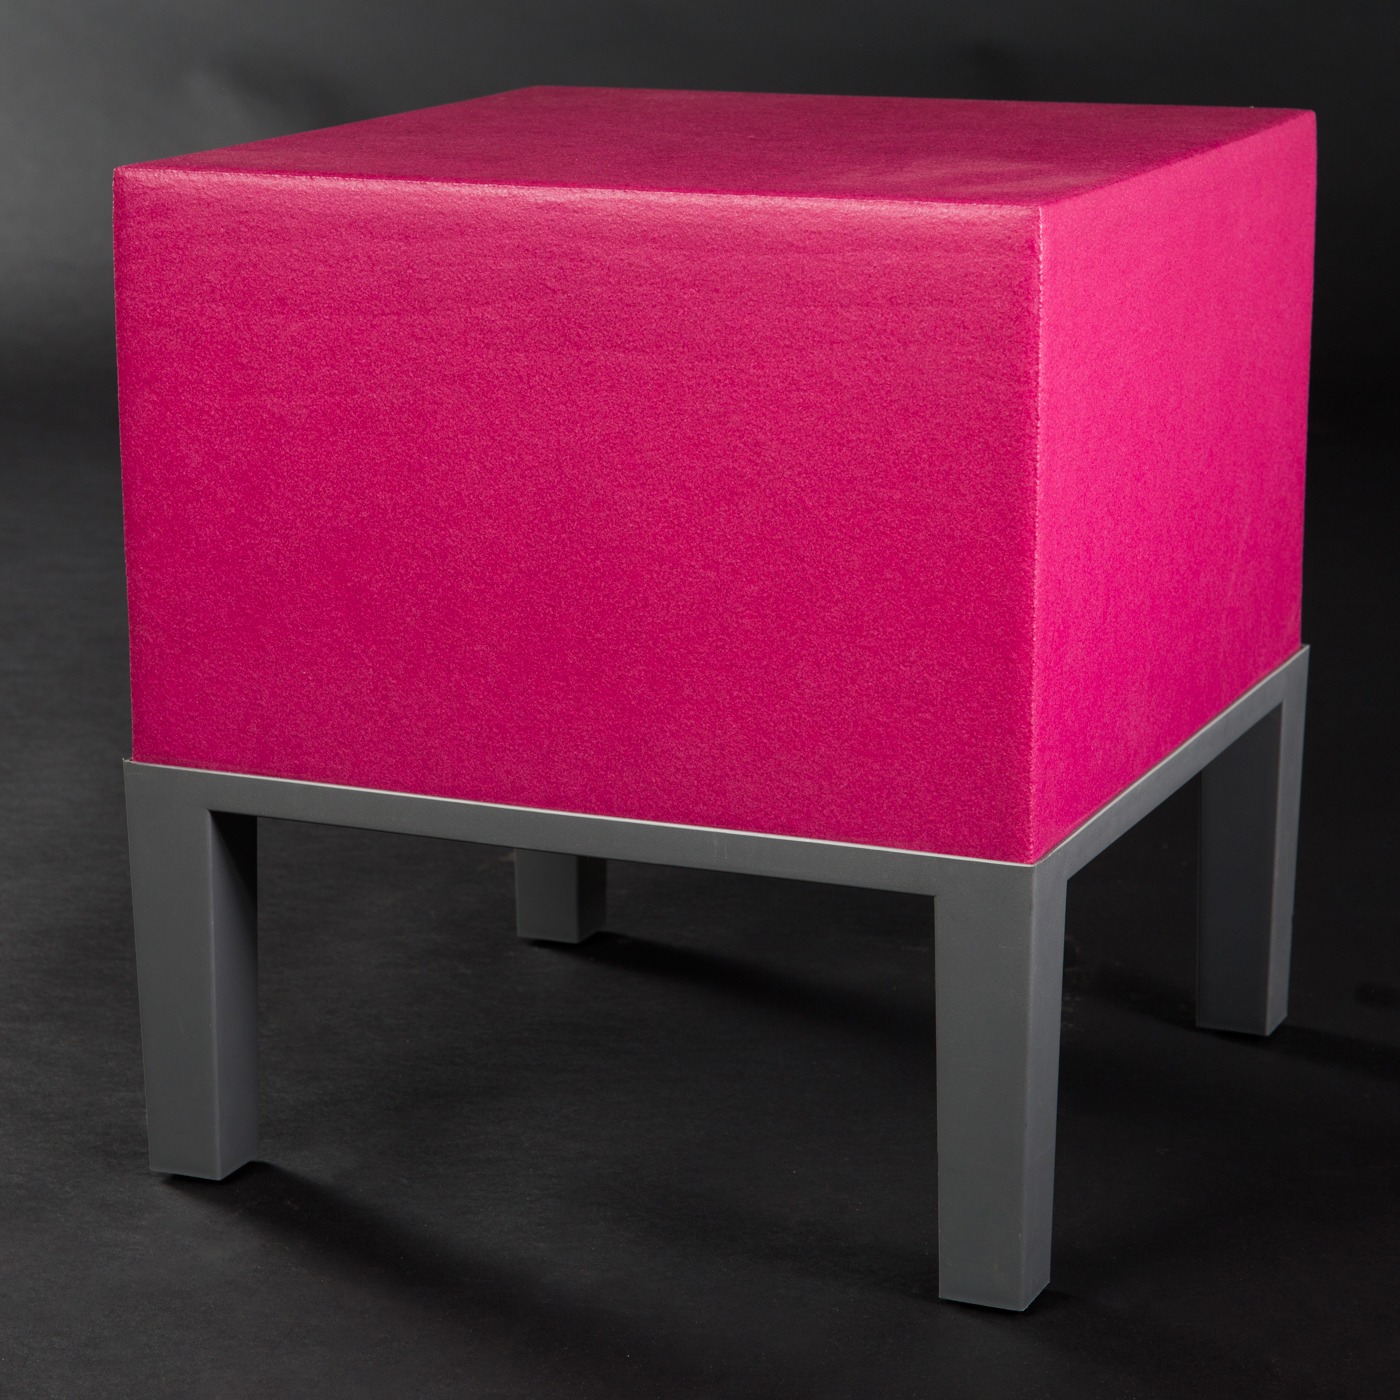 Marvelous Quinze U0026 Milan Monstro Project Primary Pouf 01 / Hocker / Ottomane, Pink /  Magenta | Lauritz.com Photo